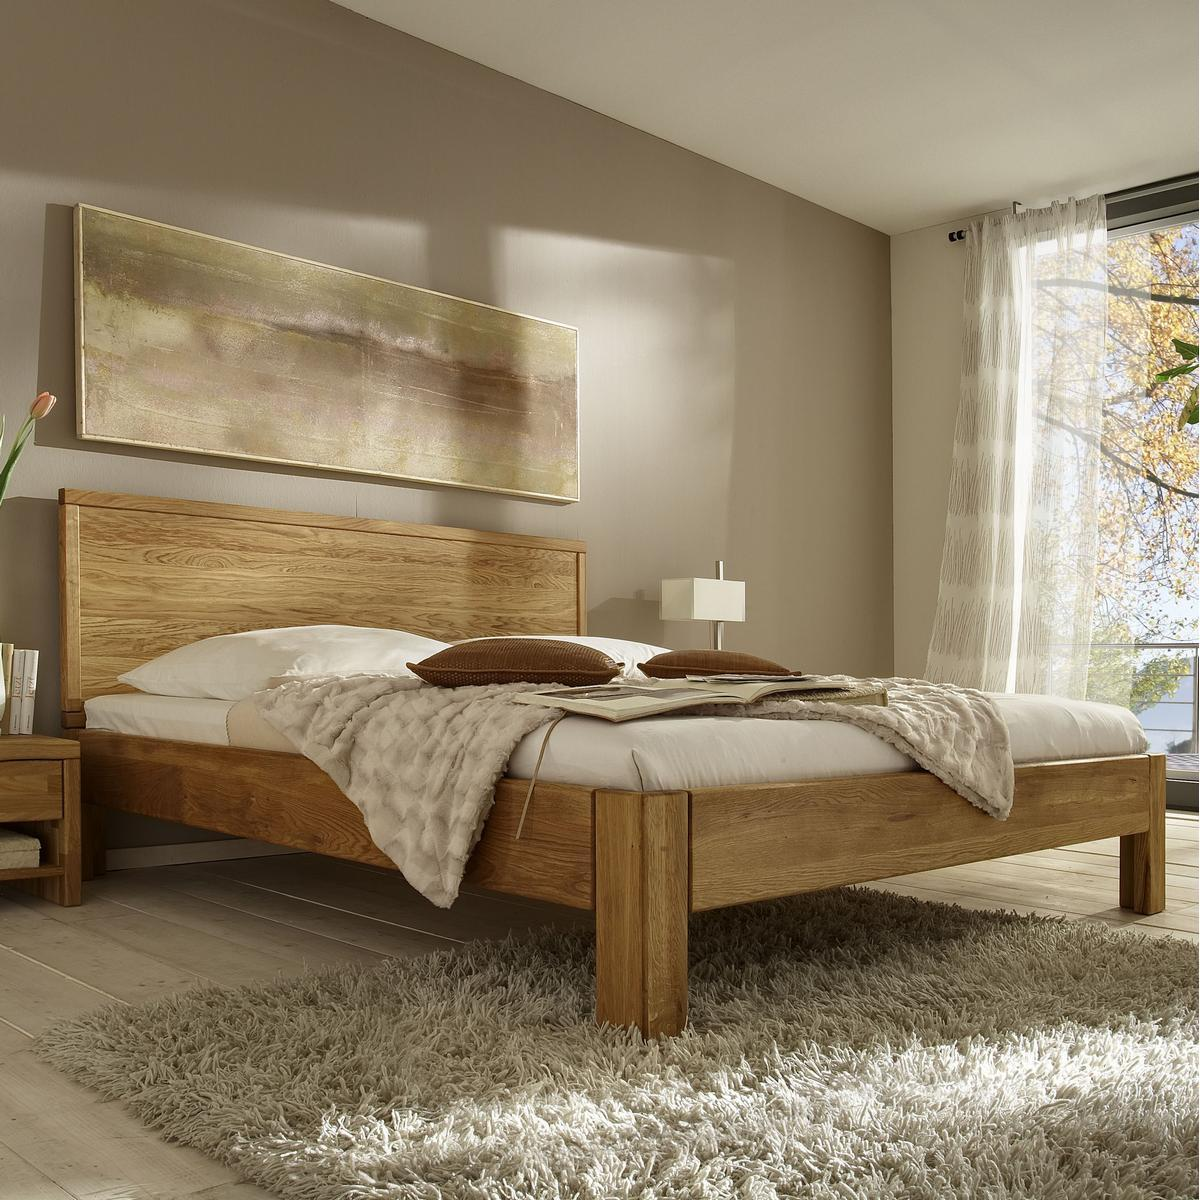 massivholz bett 200x200 easy sleep eiche massiv ge lt 9320 93 3. Black Bedroom Furniture Sets. Home Design Ideas